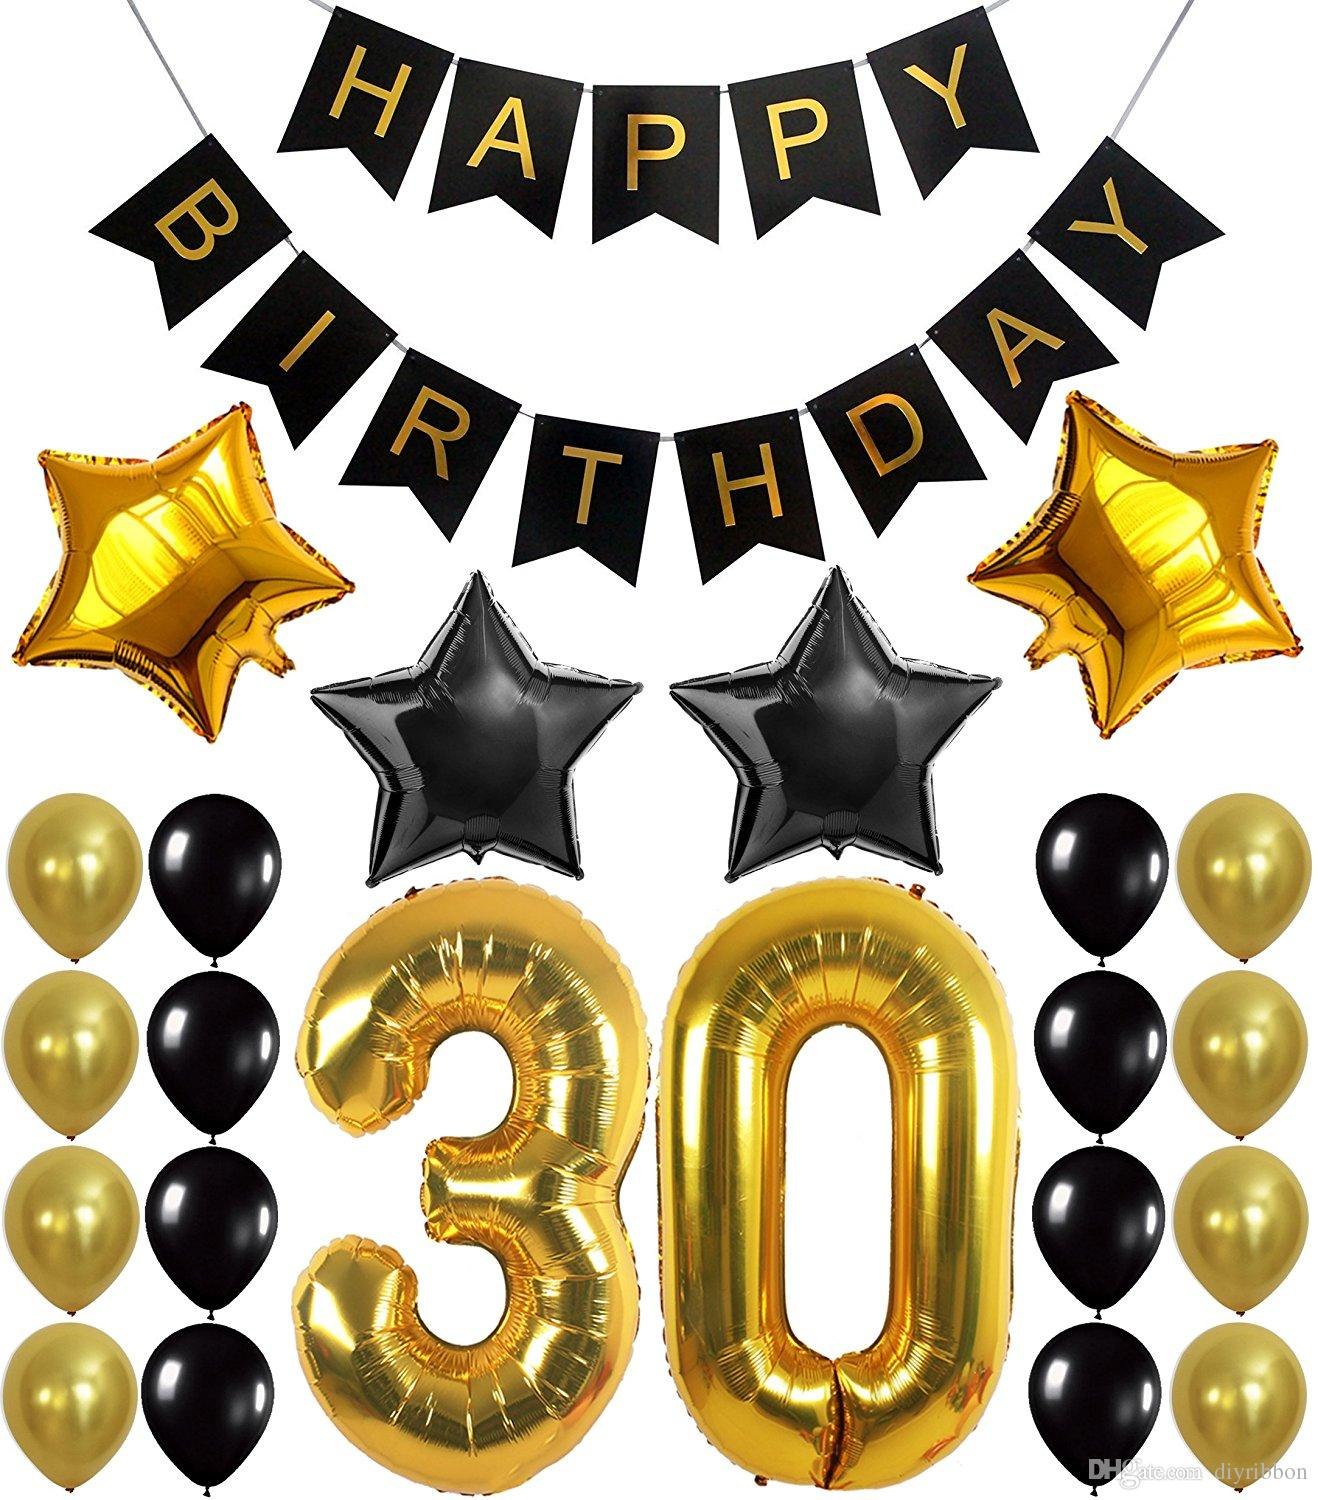 black and gold birthday banner ; 30th-birthday-party-decorations-kit-happy